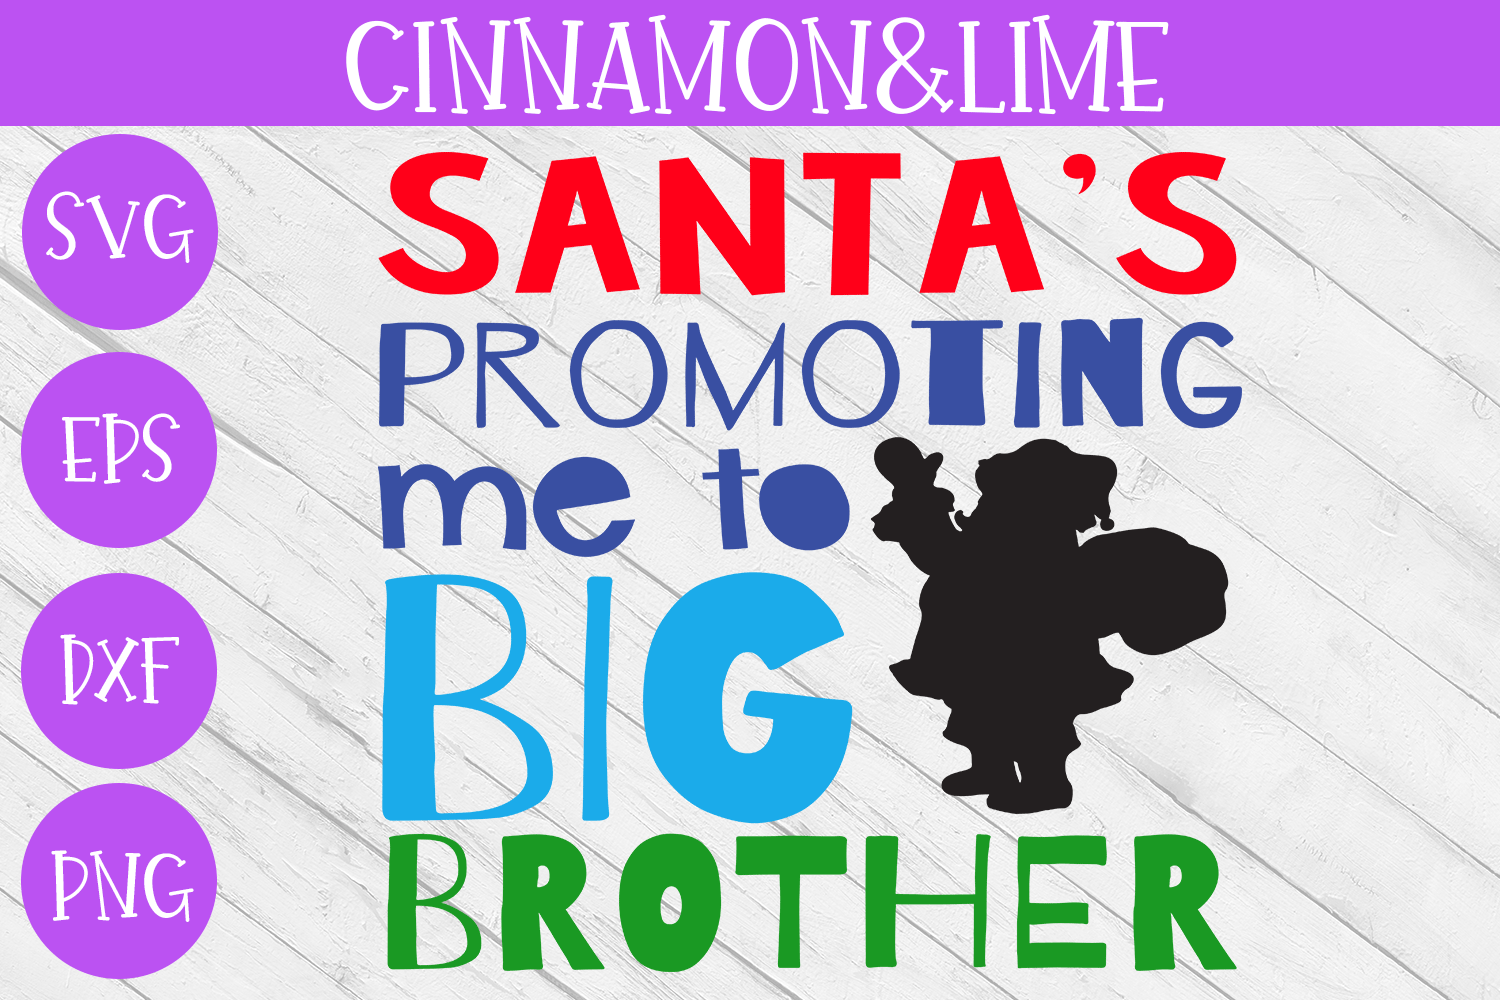 Christmas SVG - Santa's Promoting me to Big Brother example image 1